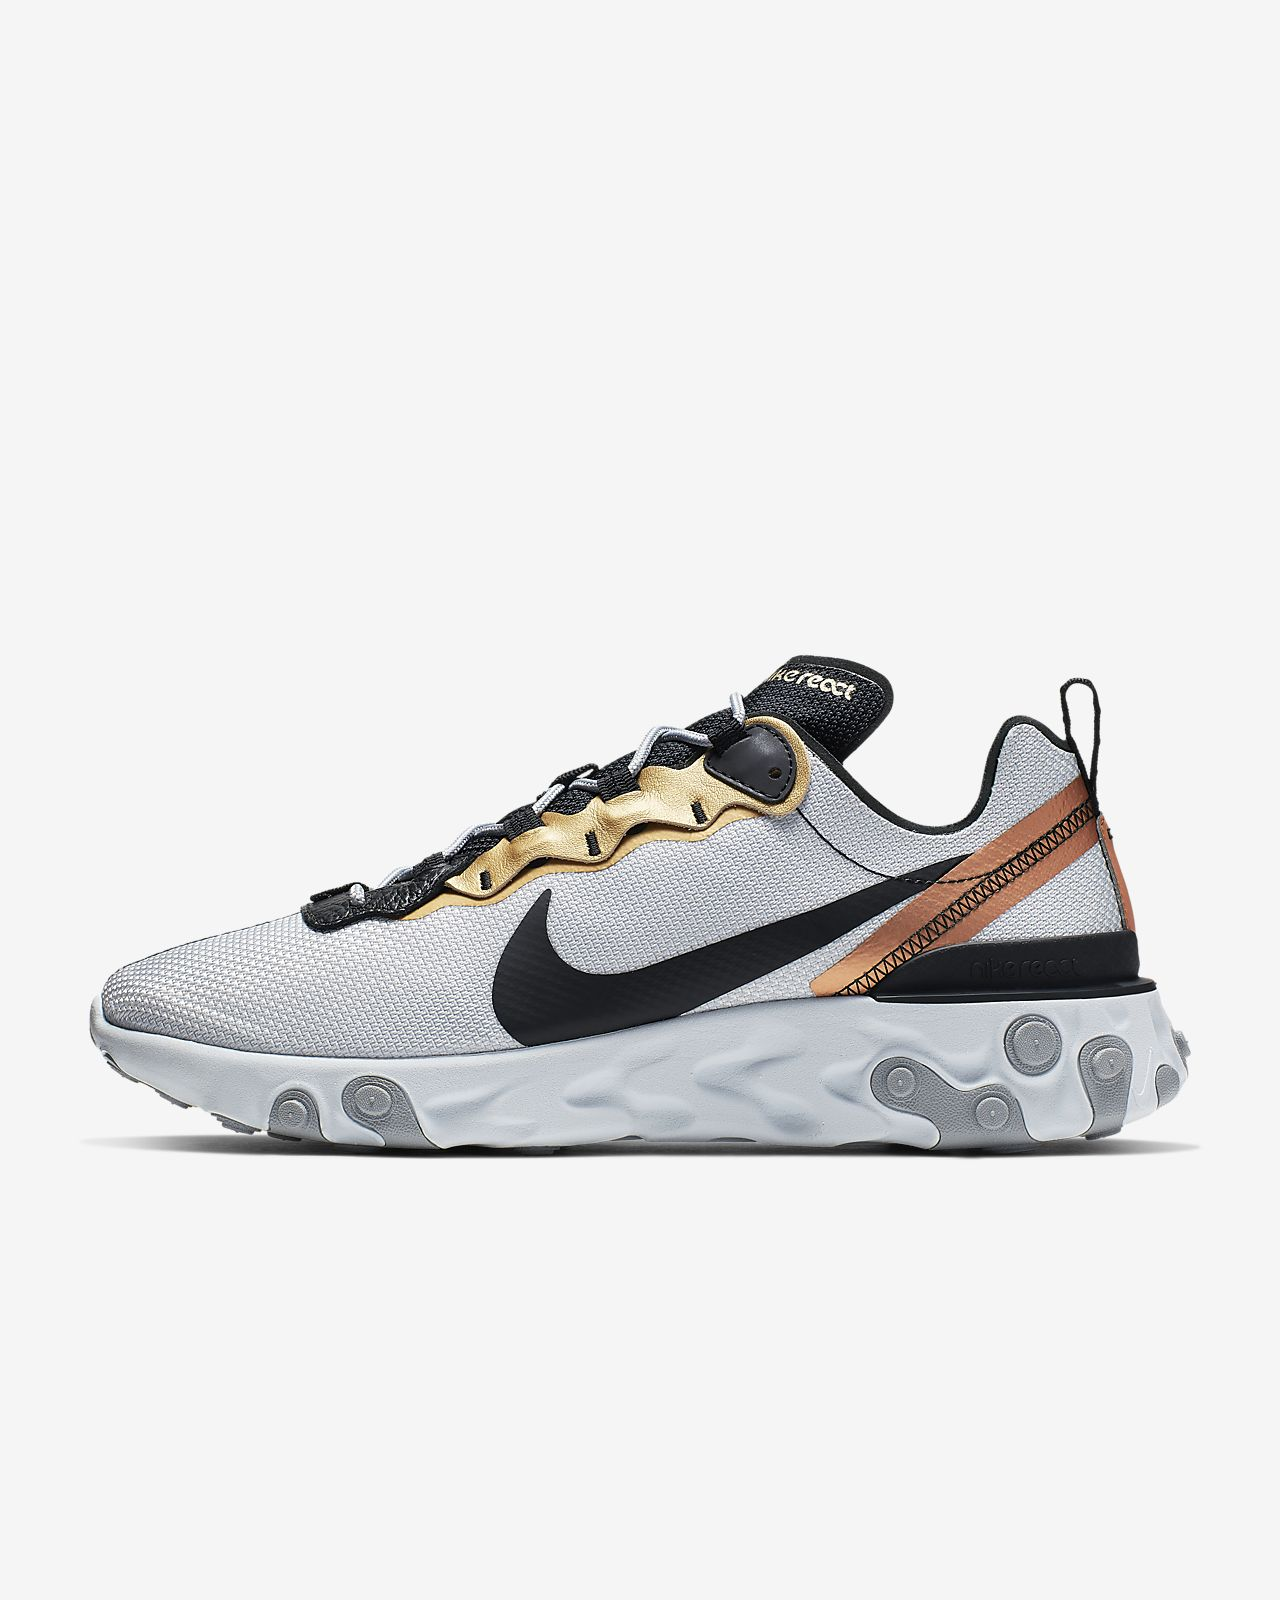 97f14ed513fc Nike React Element 55 Men s Shoe. Nike.com CA